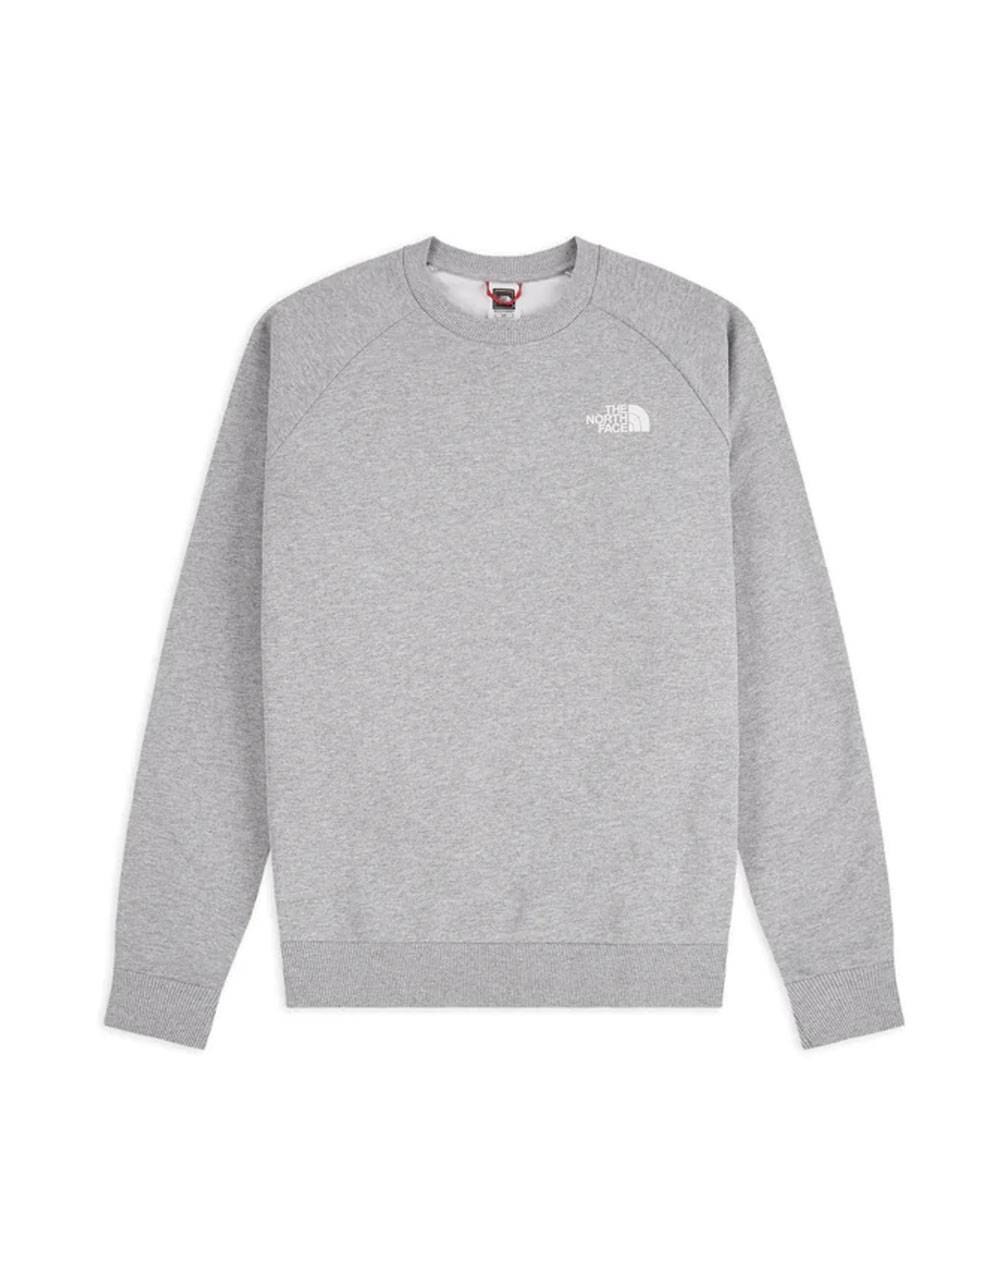 The North Face raglan red box new crewneck sweater - light grey THE NORTH FACE Sweater 92,00 €